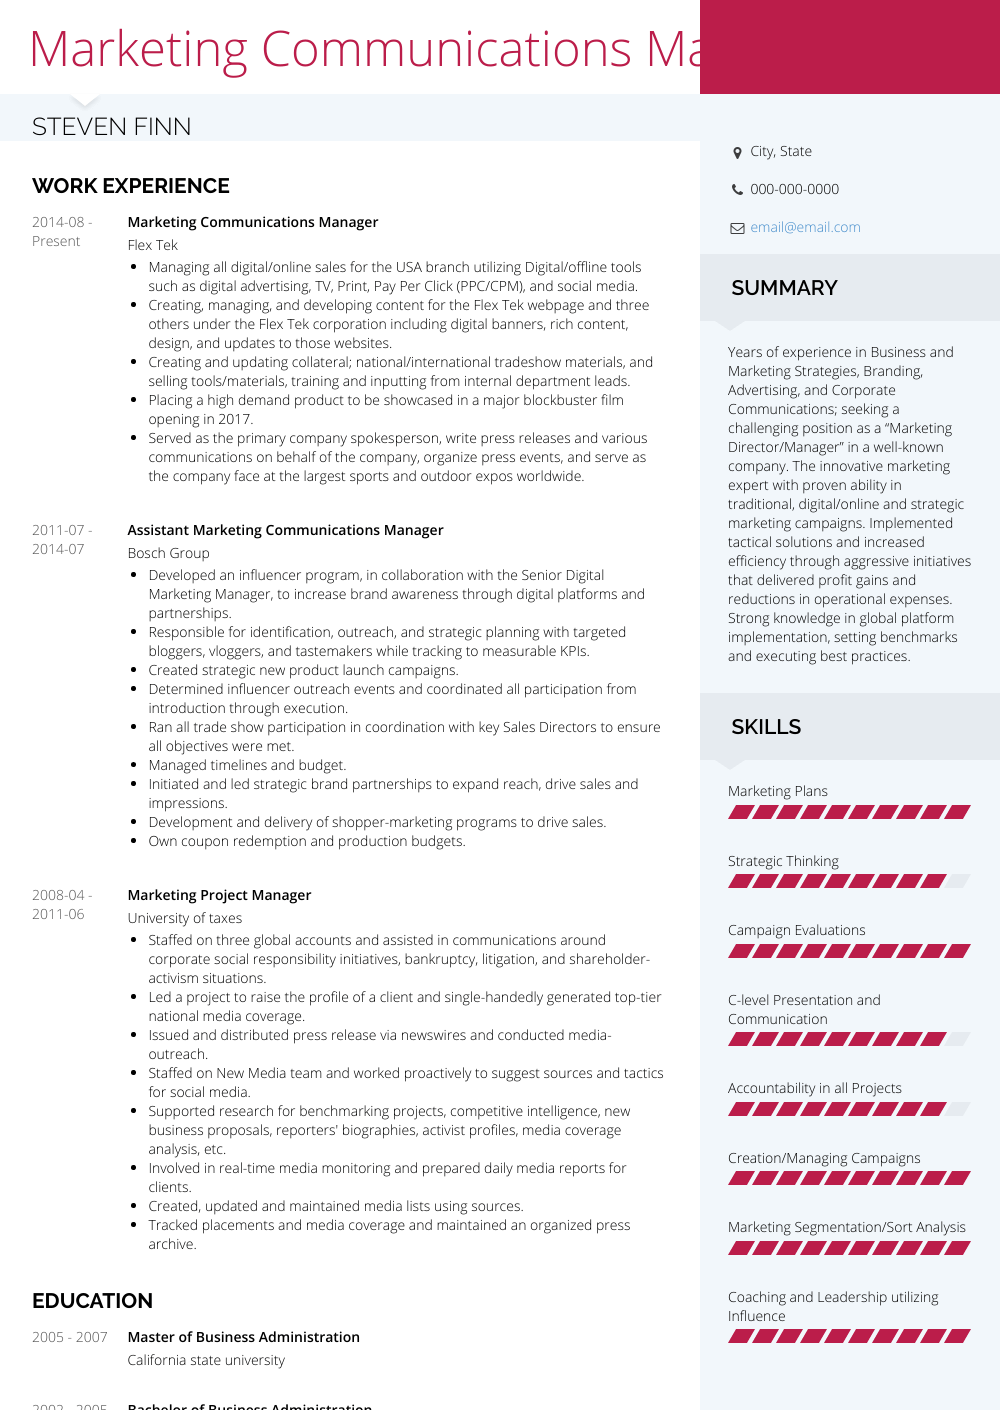 Communications Manager - Resume Samples and Templates | VisualCV